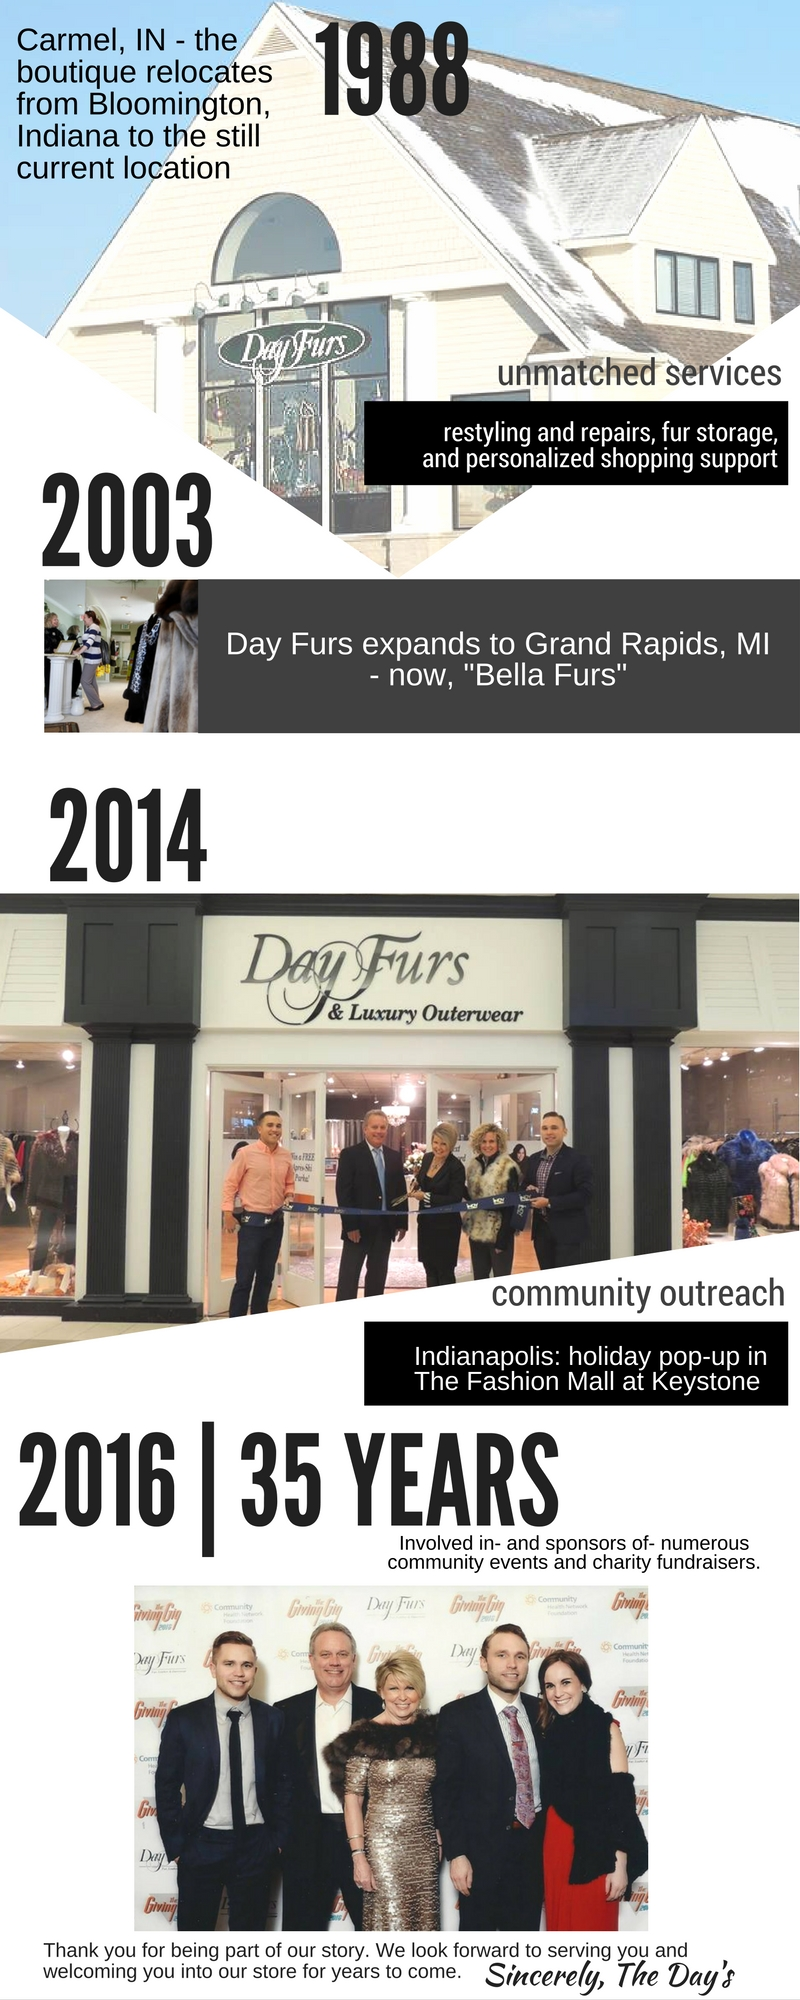 story-of-day-furs-2-family-brand-luxury-outerwear-carmel-indiana